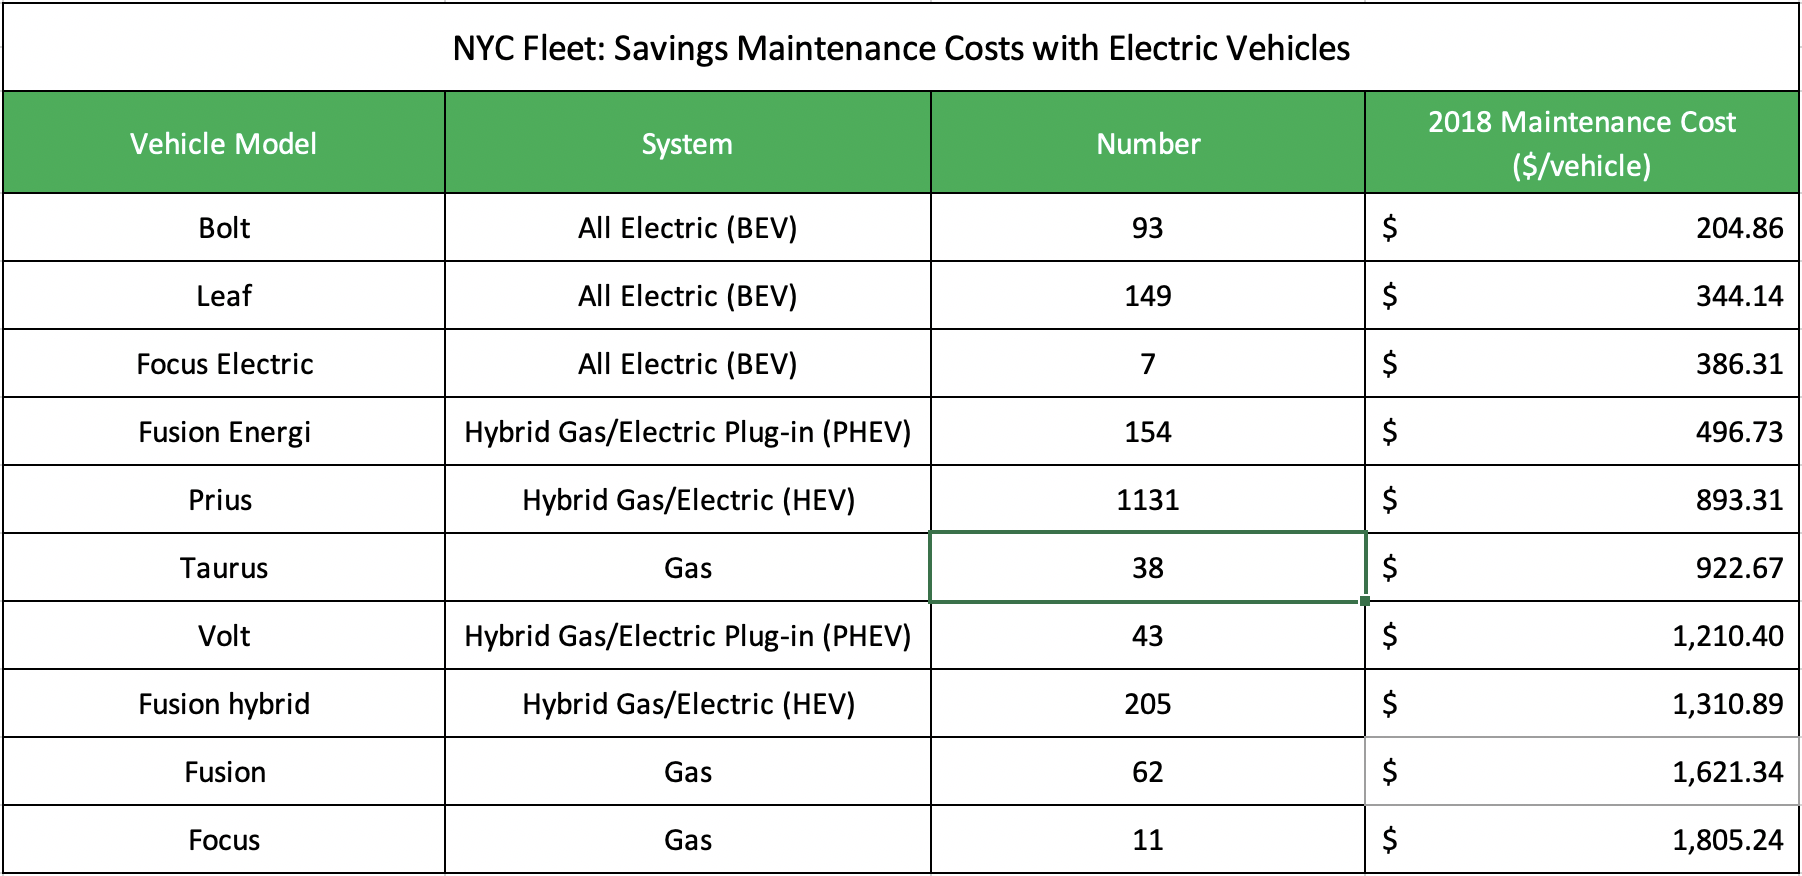 Source:  NYC Administrative Services: Reducing Maintenance Costs With Electric Vehicles